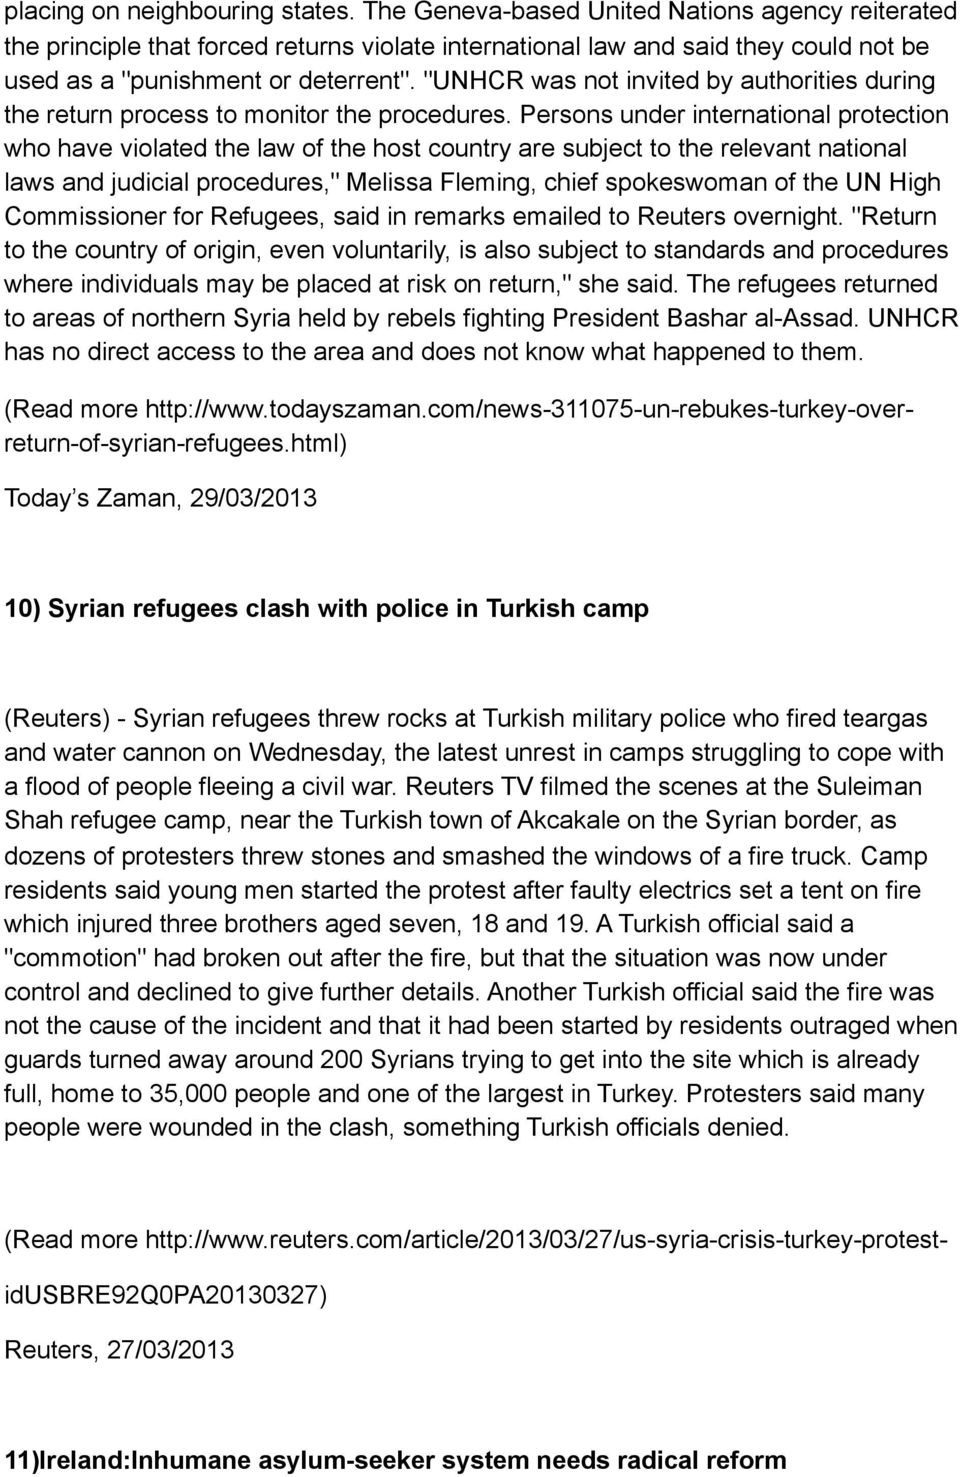 """UNHCR was not invited by authorities during the return process to monitor the procedures."